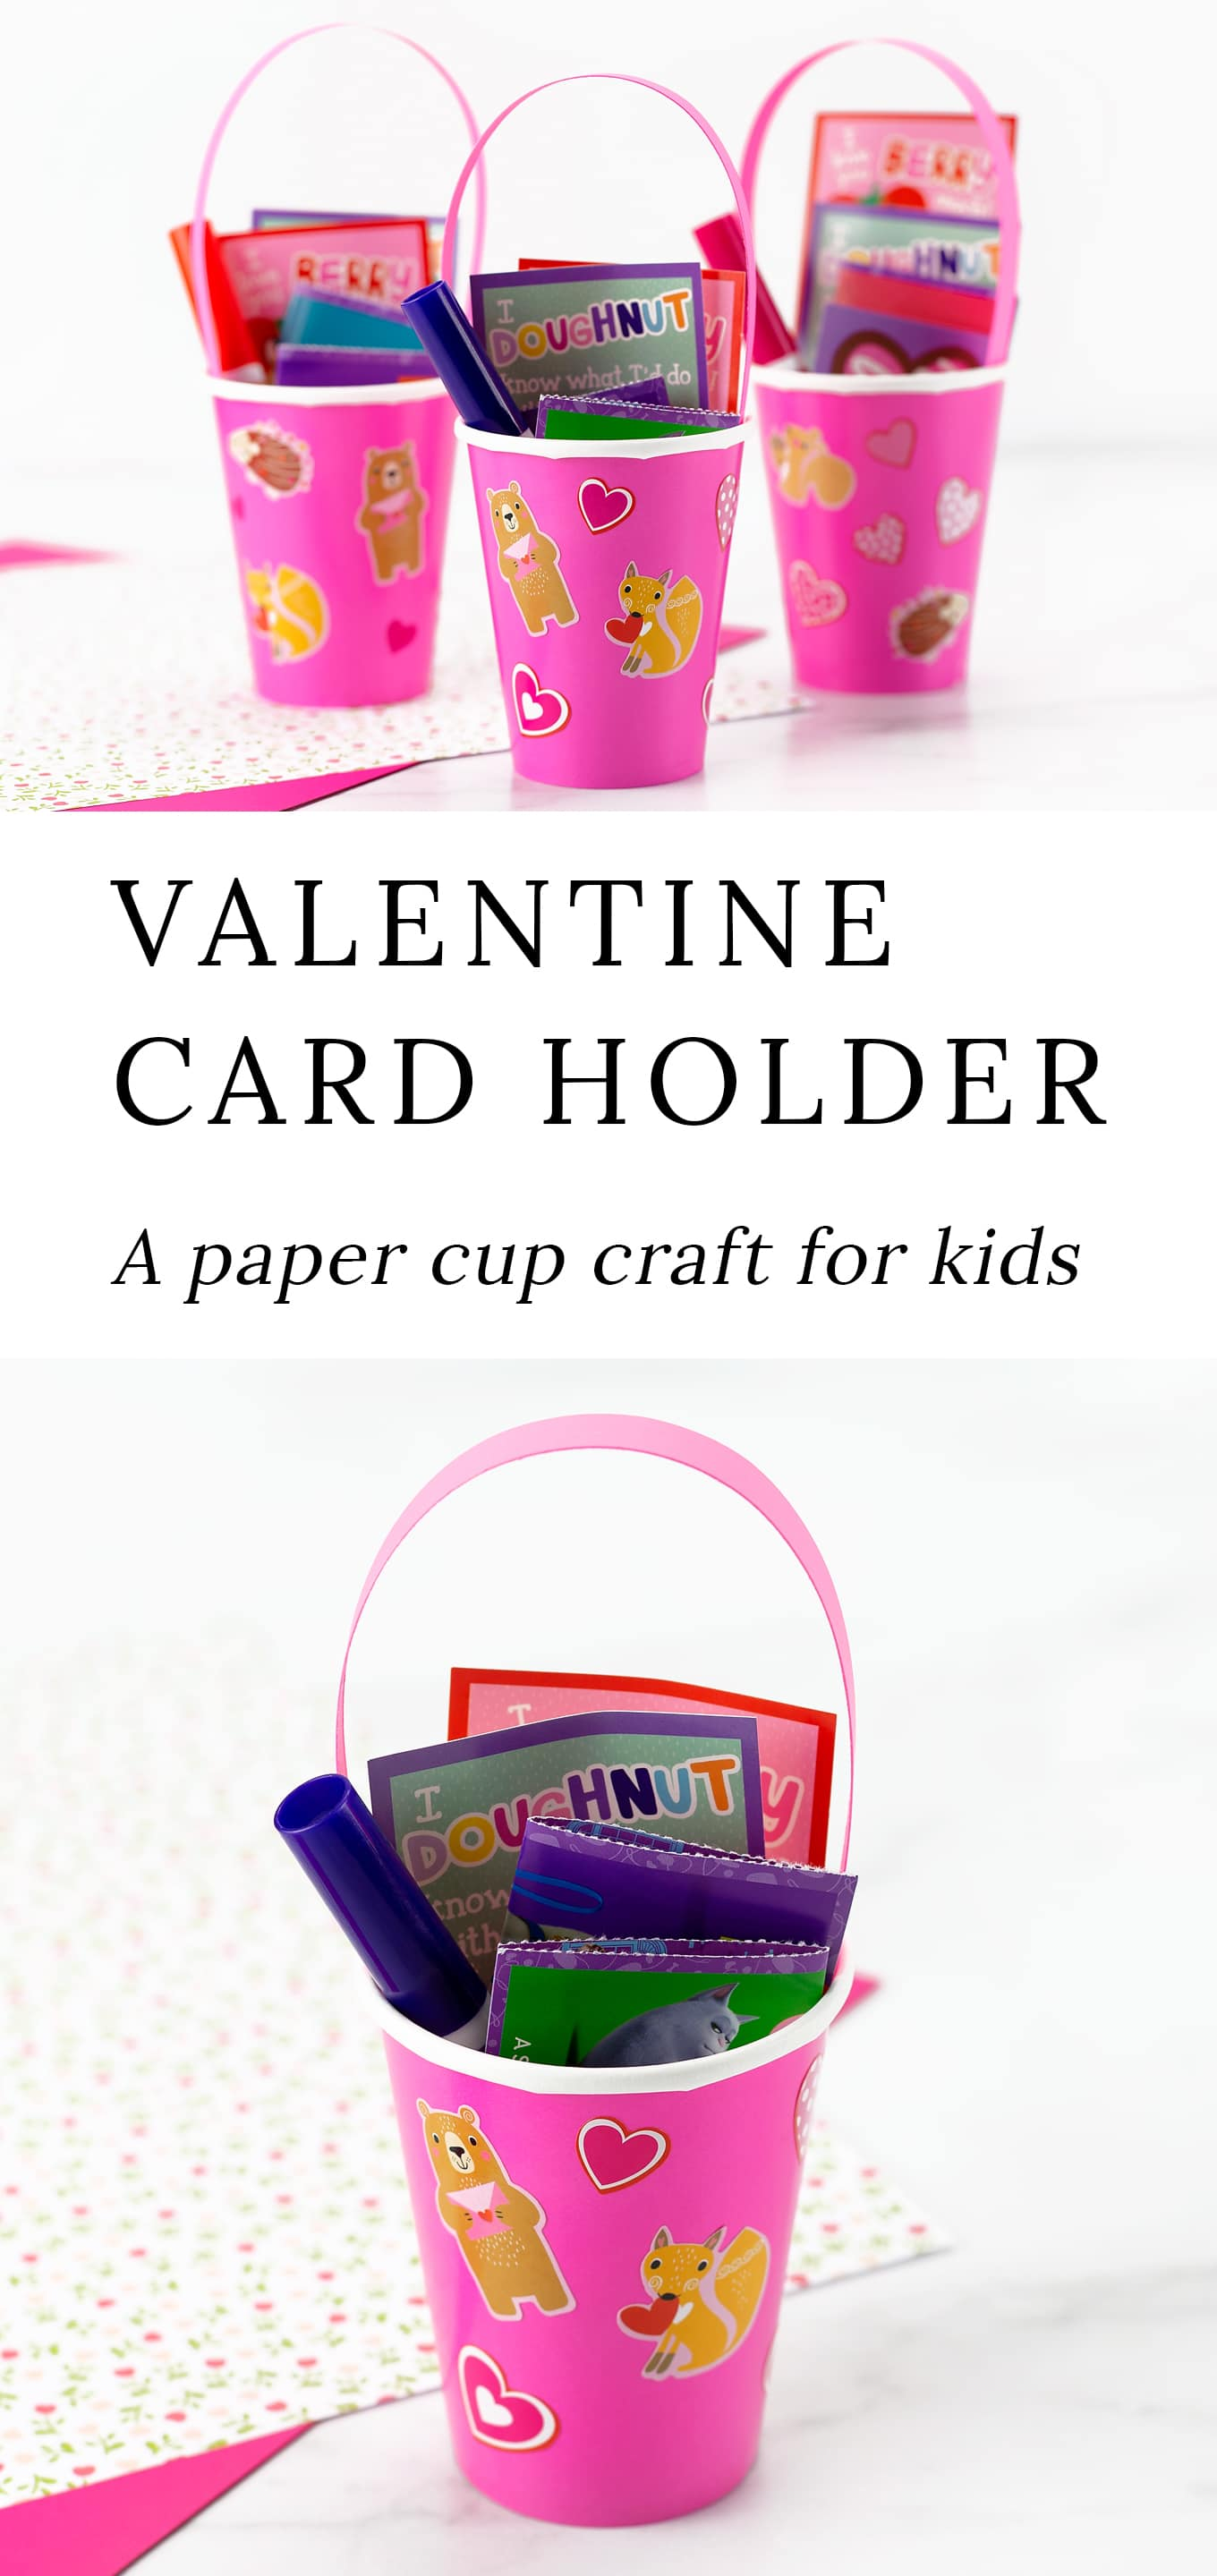 This easy, inexpensive, and cute Paper Cup Valentine Card Holder craft is perfect for holding treats at school parties, community programs, and home. Fun for ages 2 and up! via @firefliesandmudpies